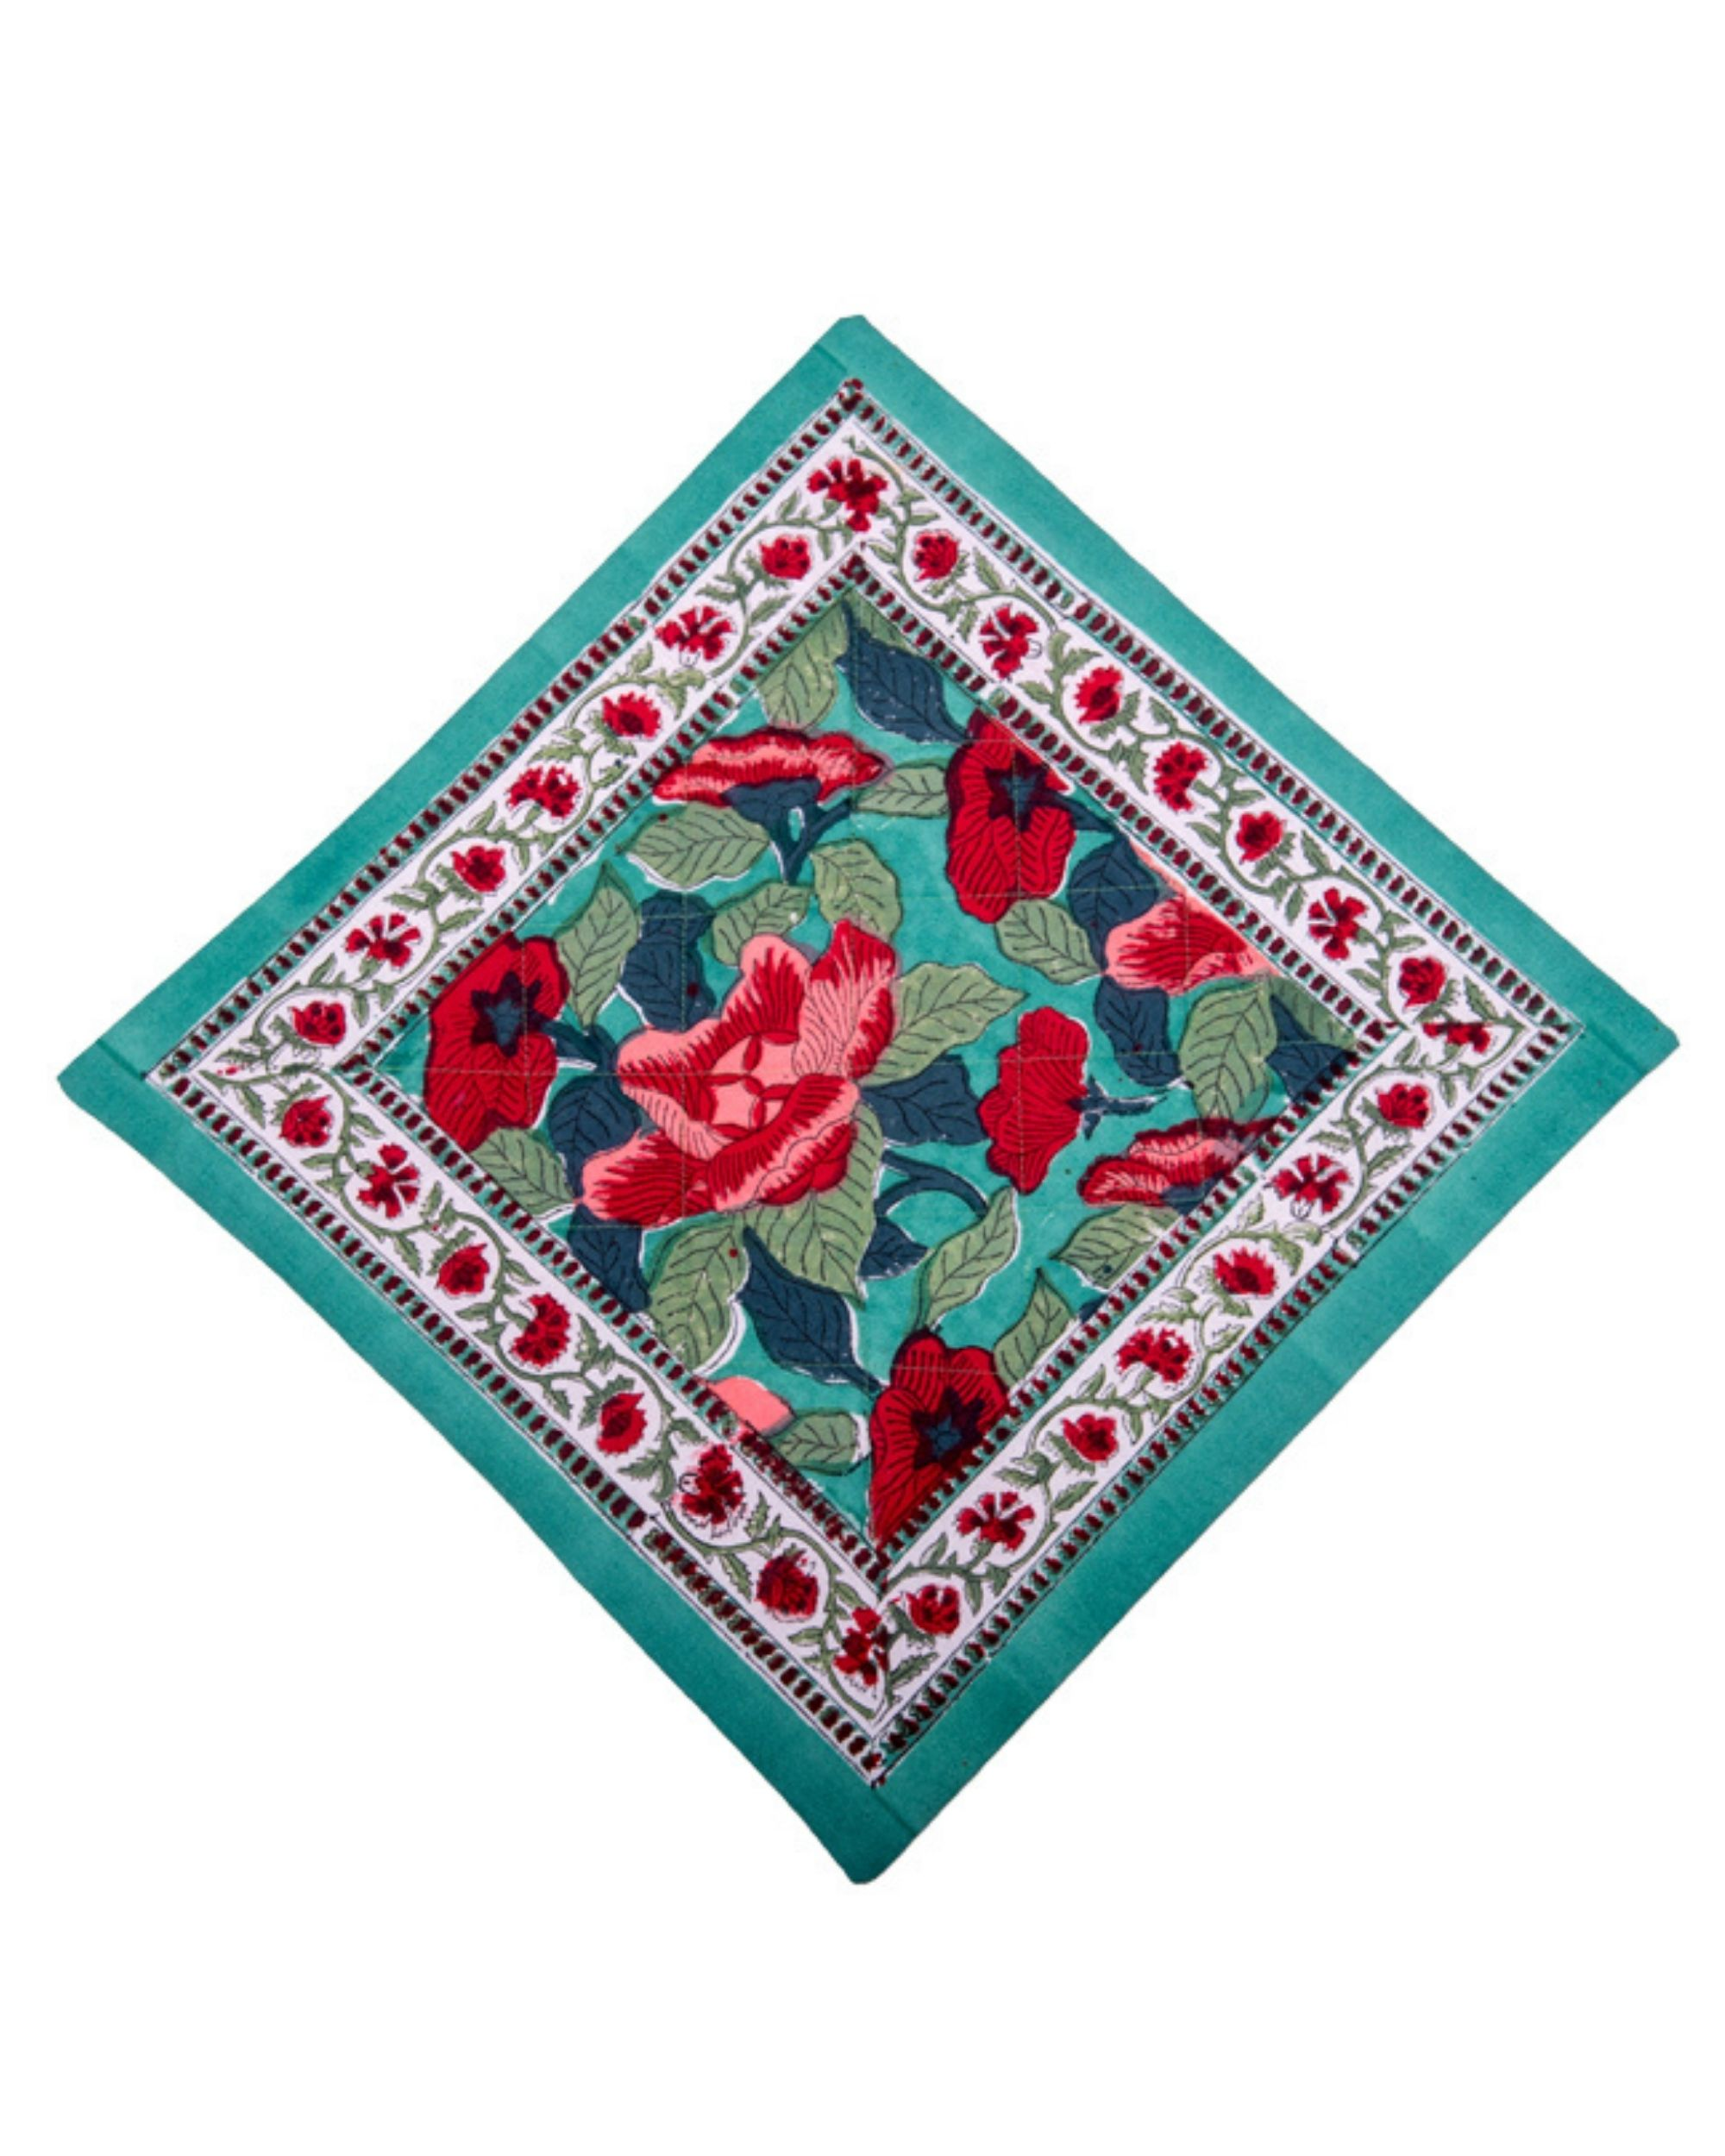 Green and red floral printed quilted cushion covers - set of 5